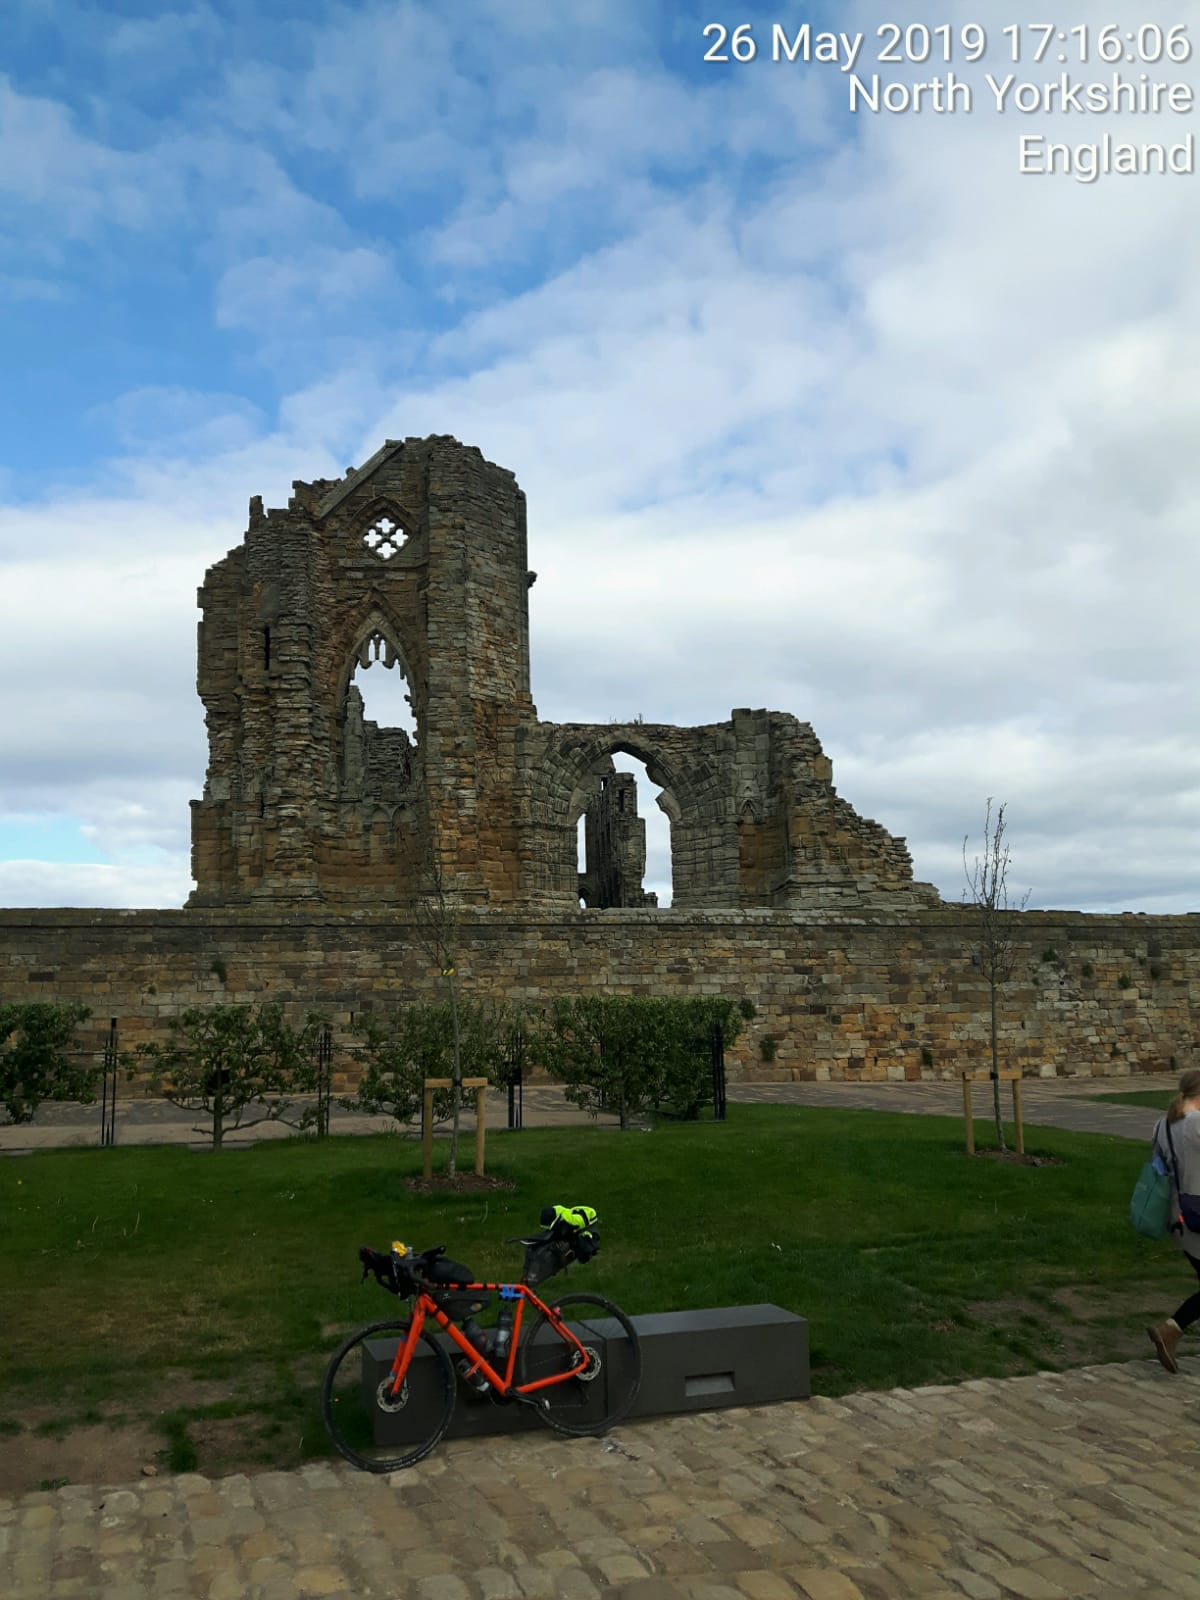 Philippa Battye at Whitby Abbey